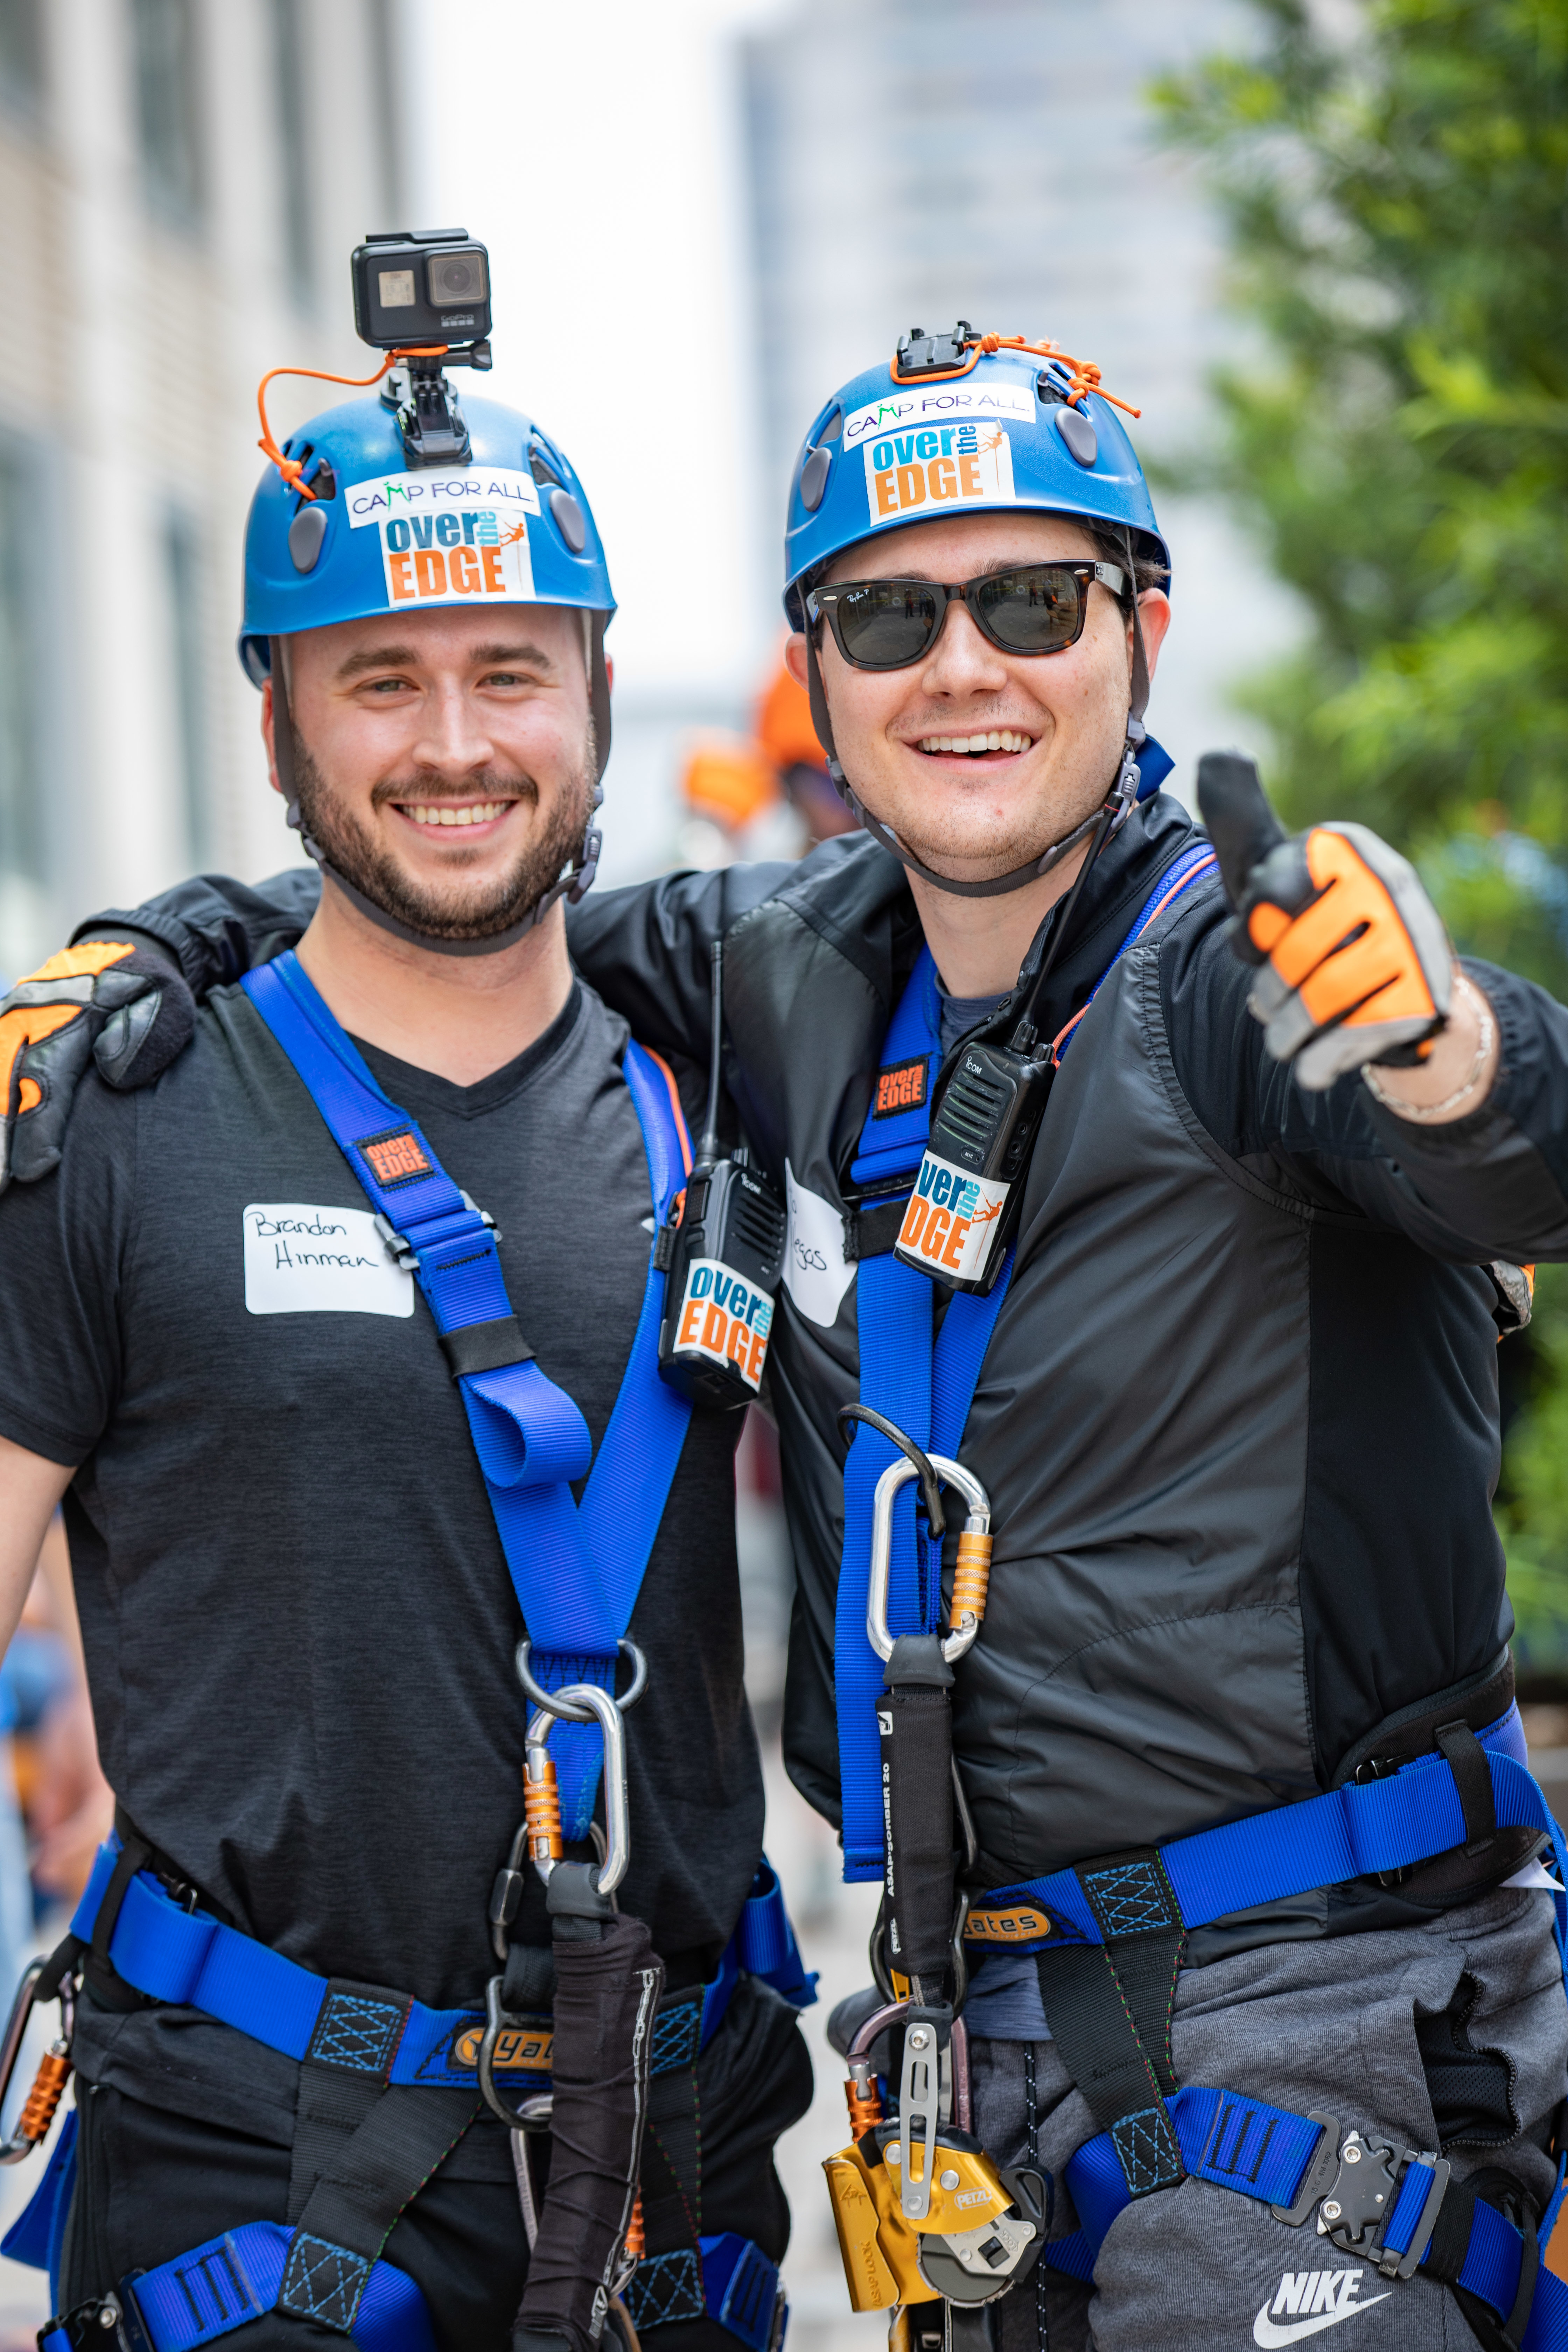 Hh over the edge for camp for all 7462